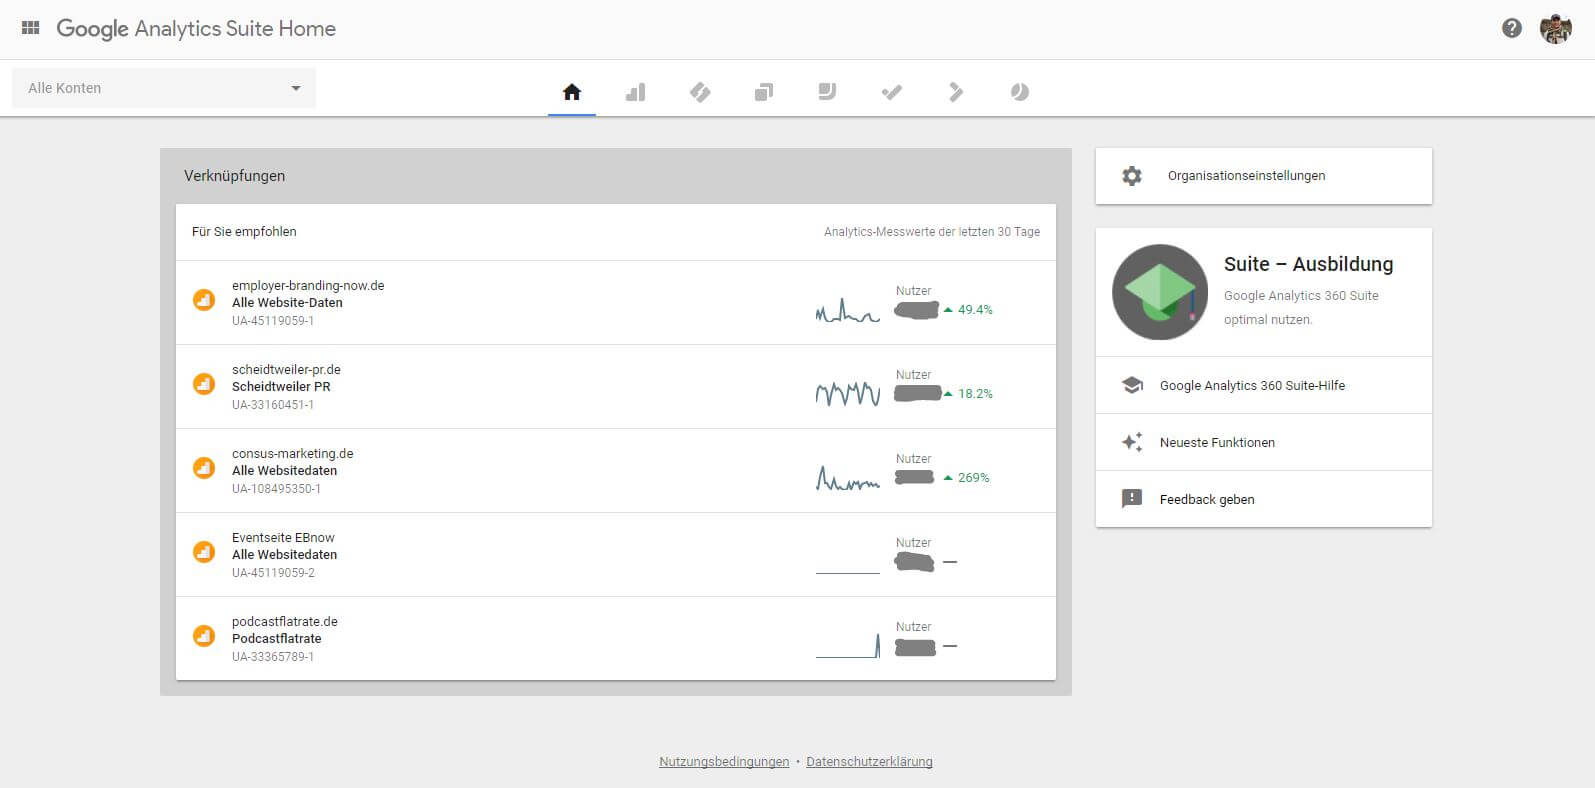 Google Analytics Suite Home als Option - PR-Blog